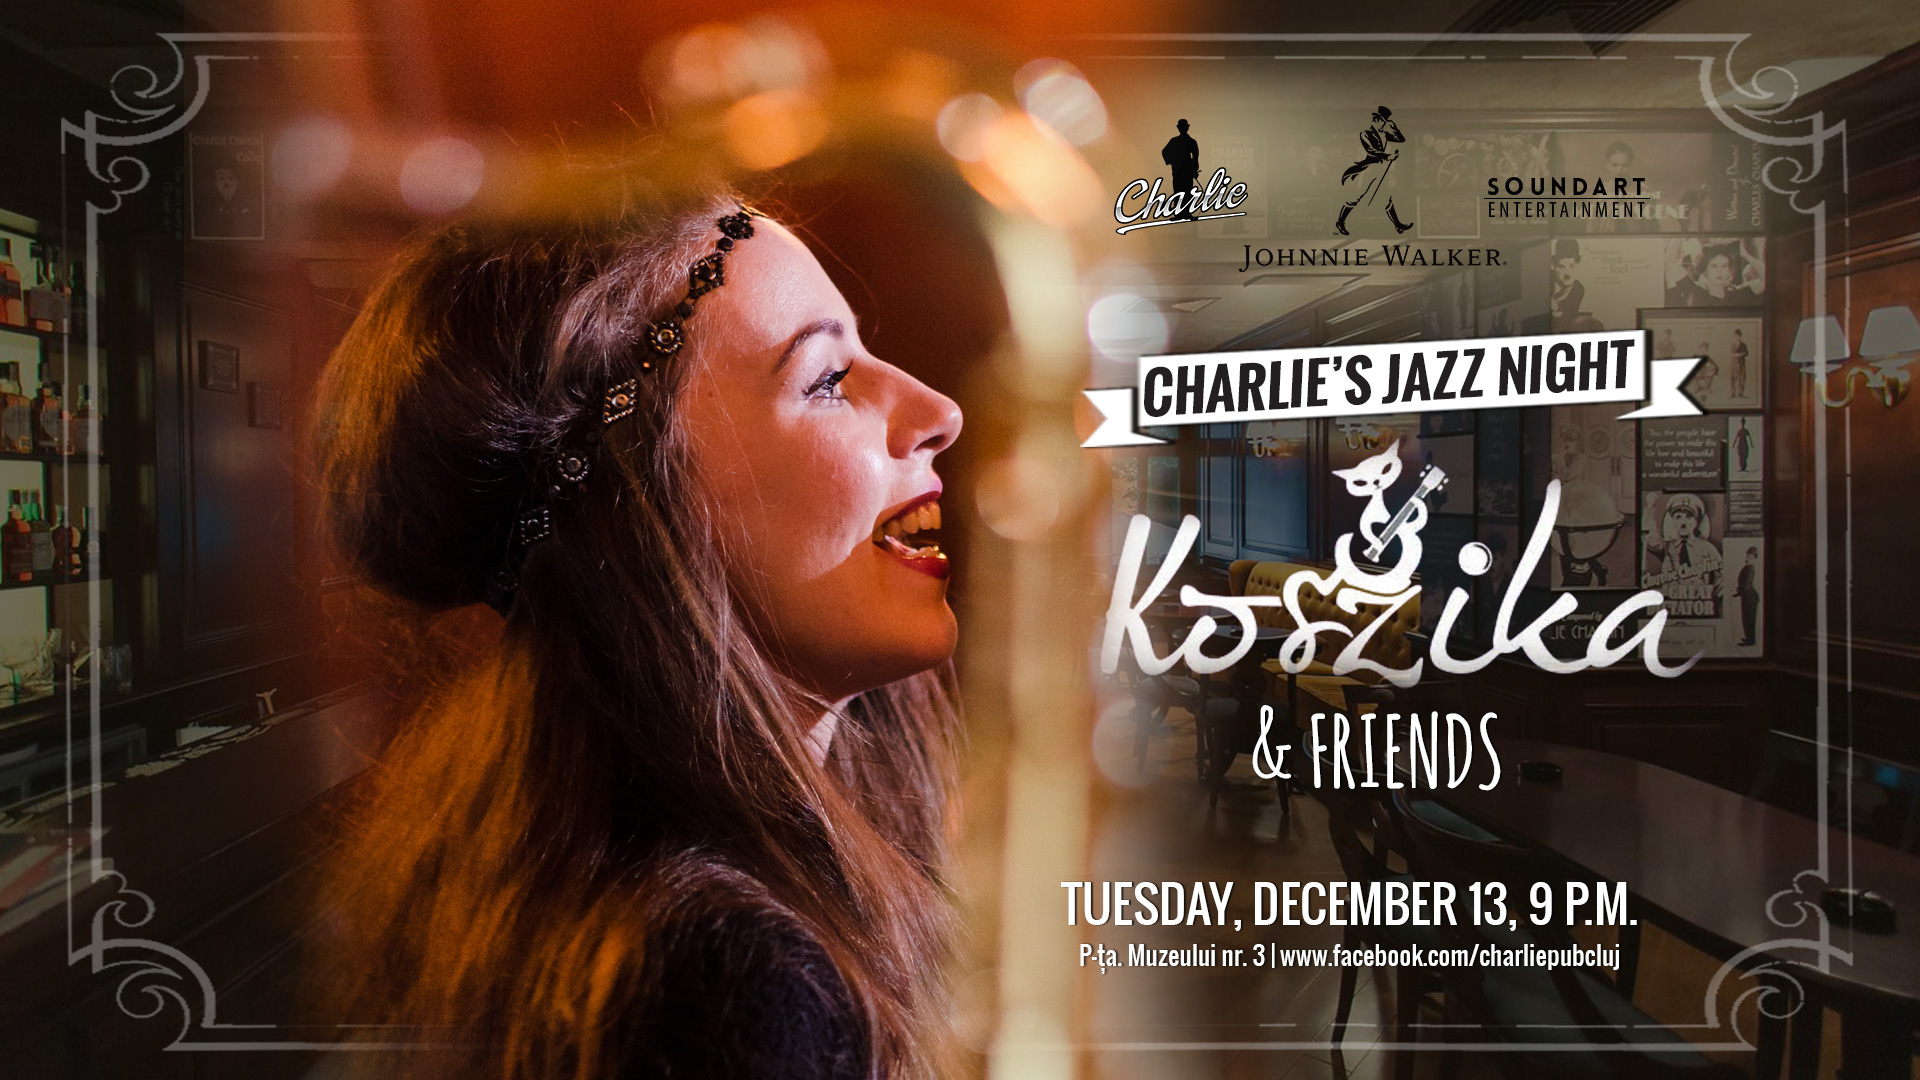 Charlie's Jazz Night: Koszika & Friends